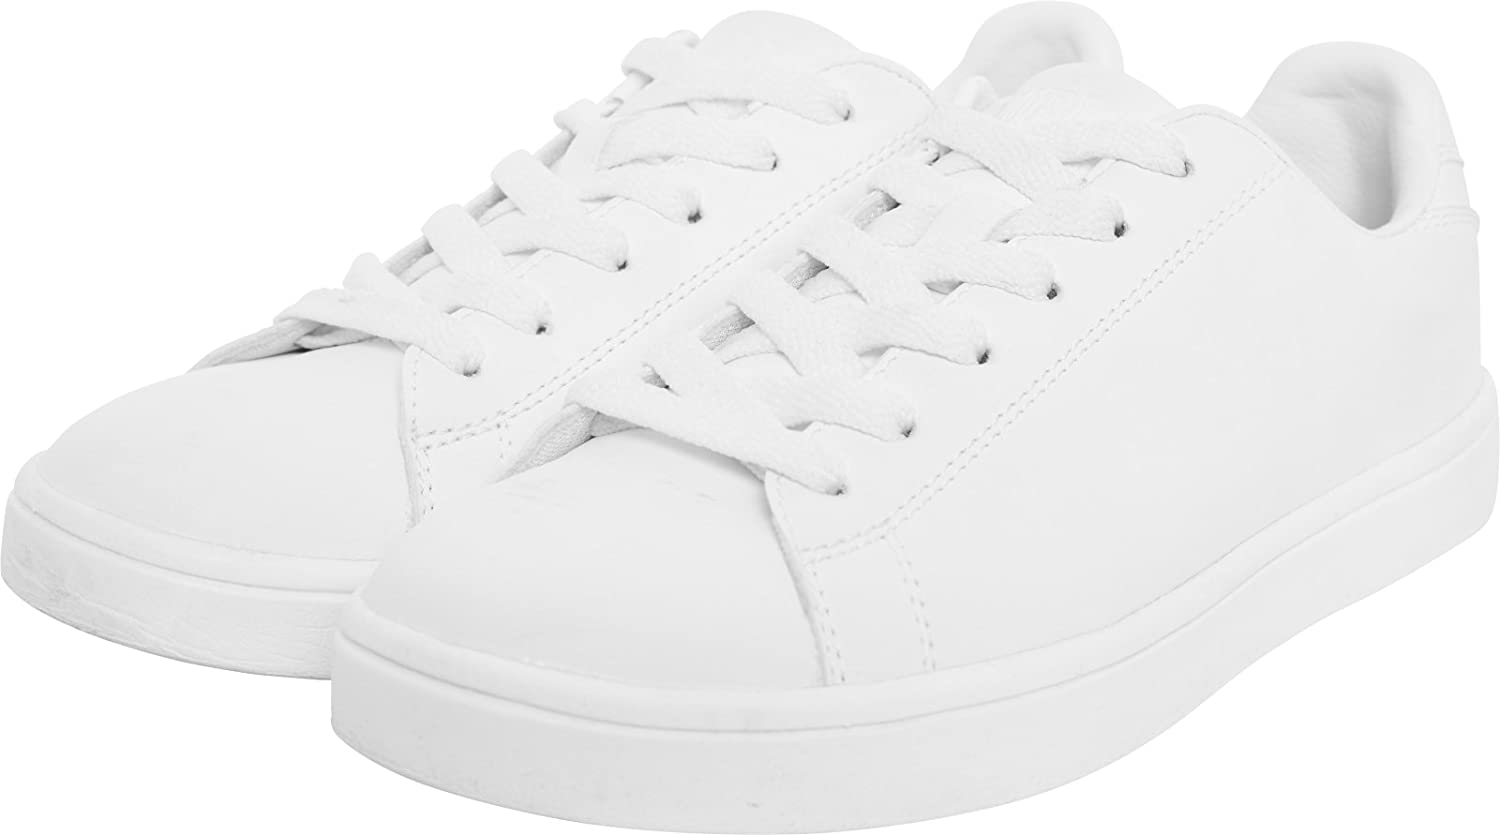 Classics Mixte Adulte Urban Summer Baskets Sneaker AFqUw